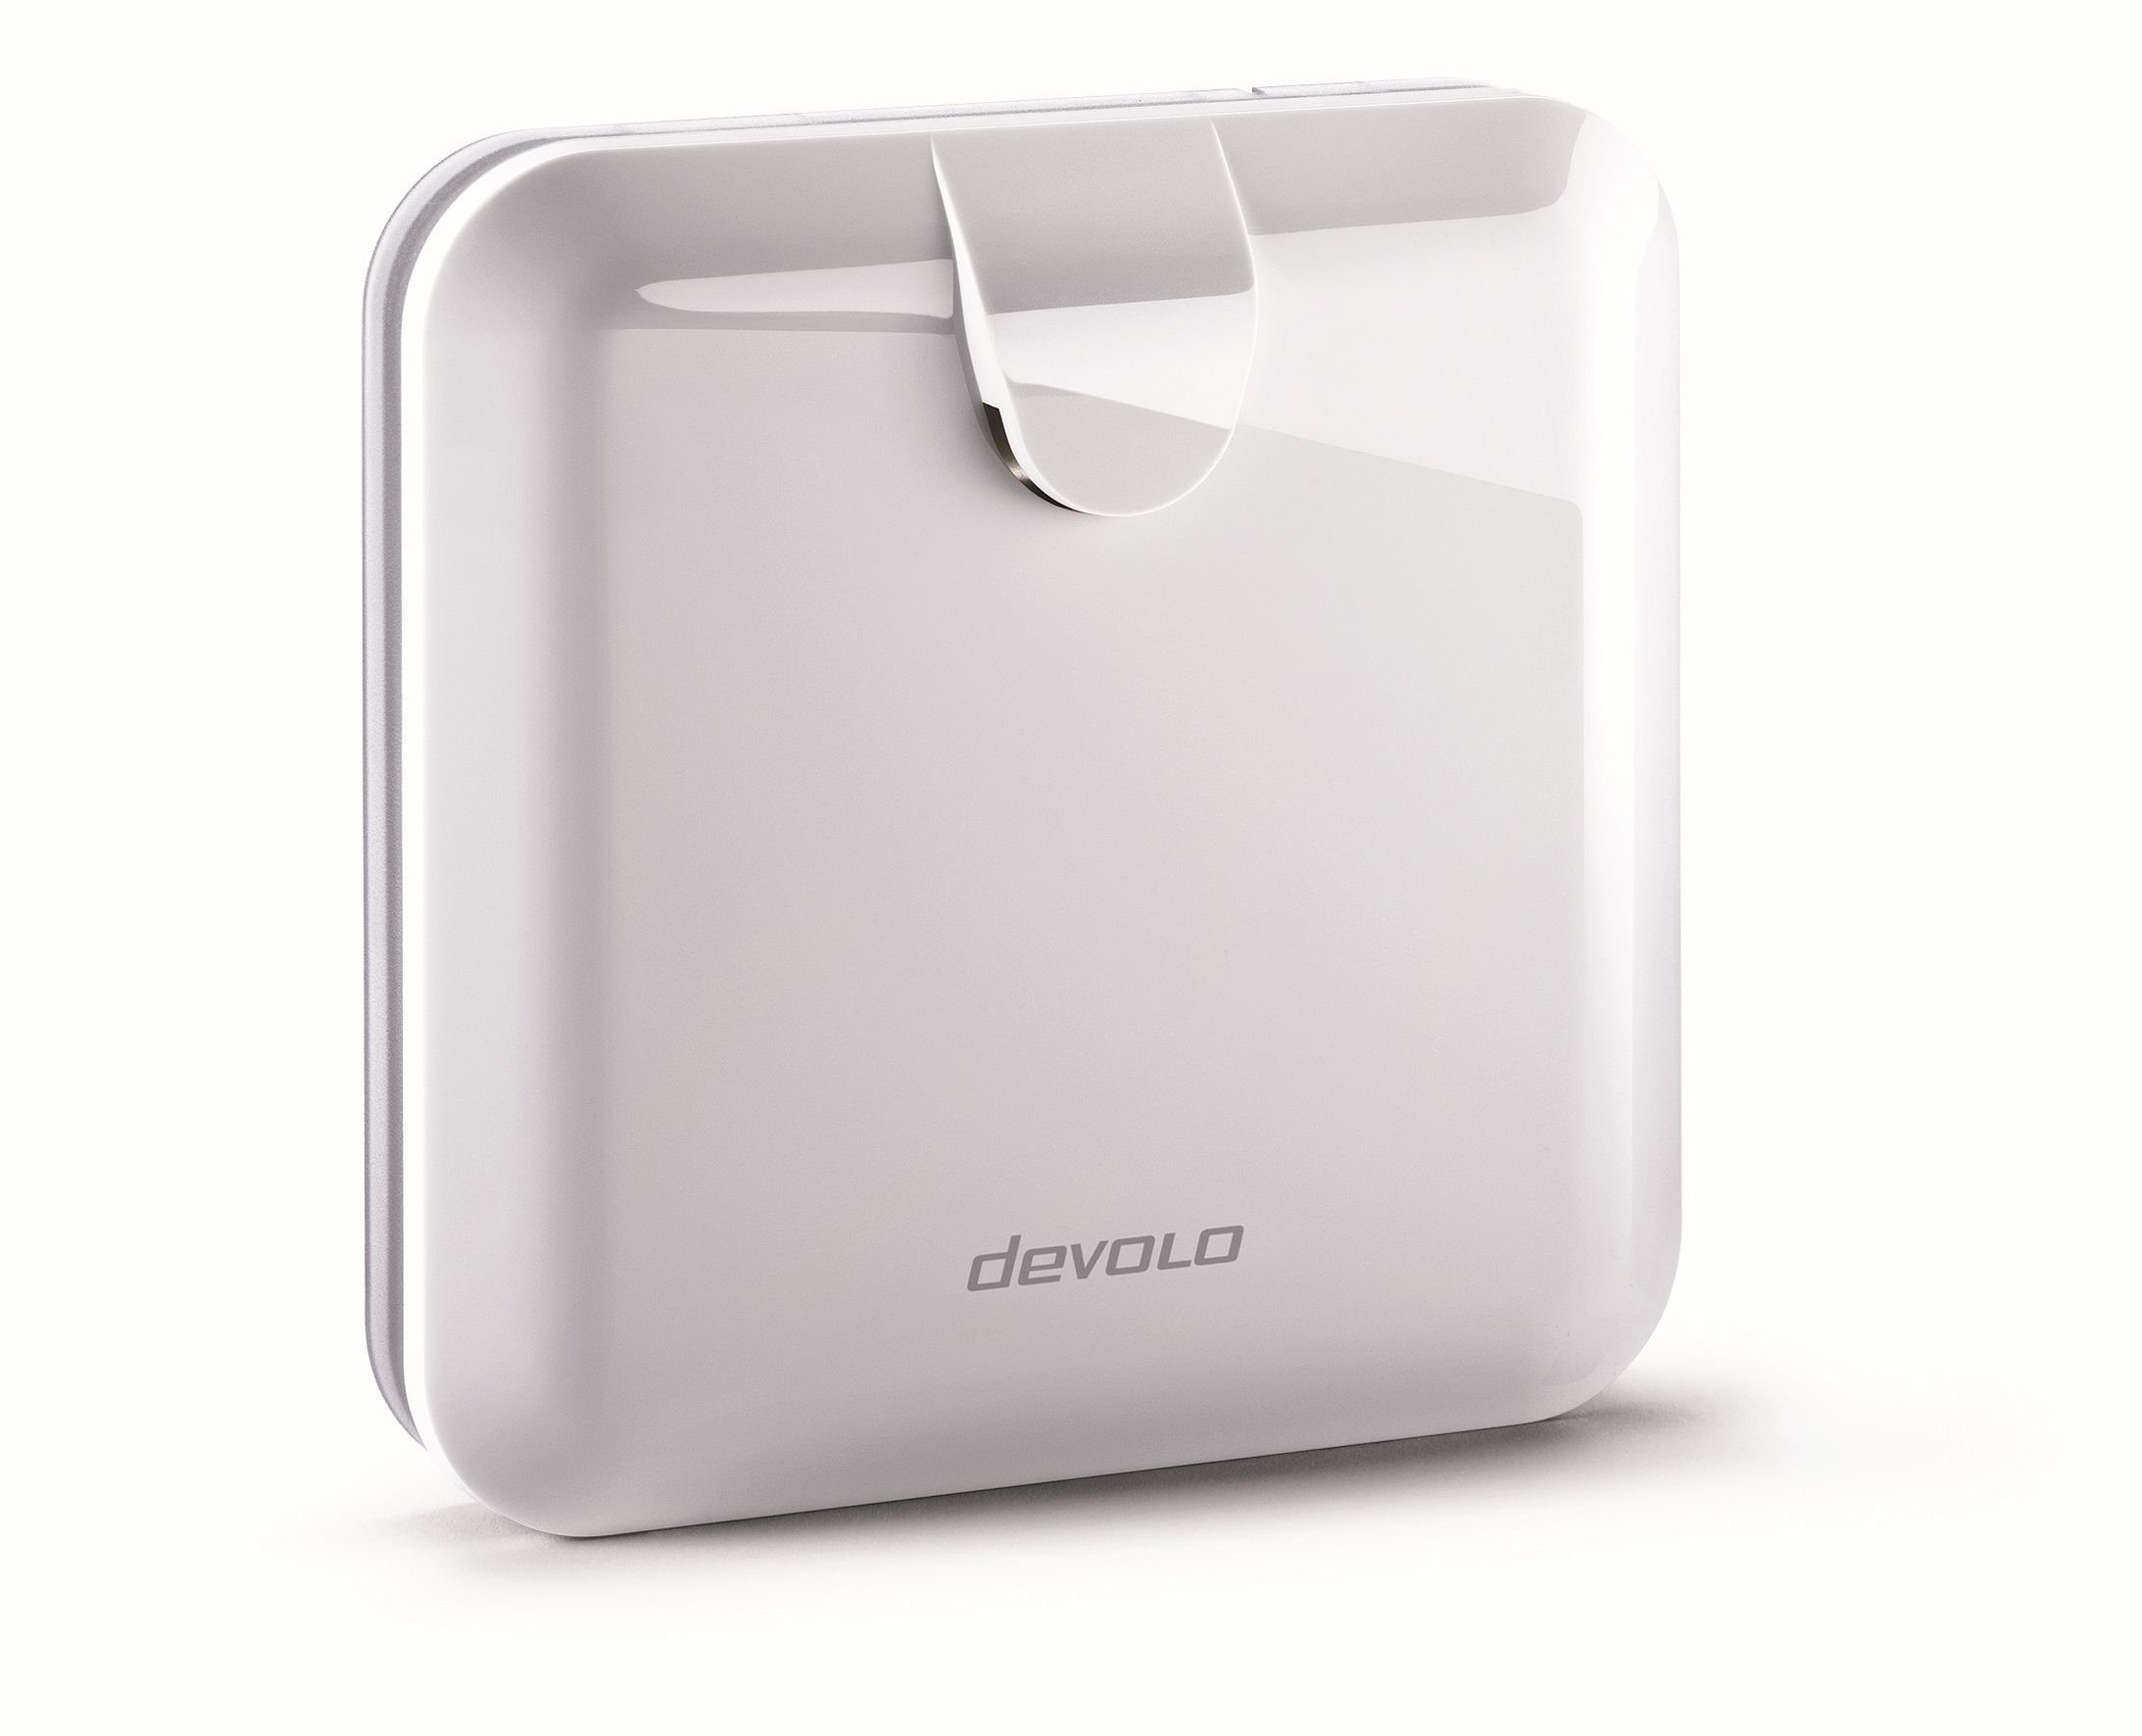 DEVOLO Smart Home Z-Wave »Home Control Alarmsirene,Hausautomation,Sicherheit«